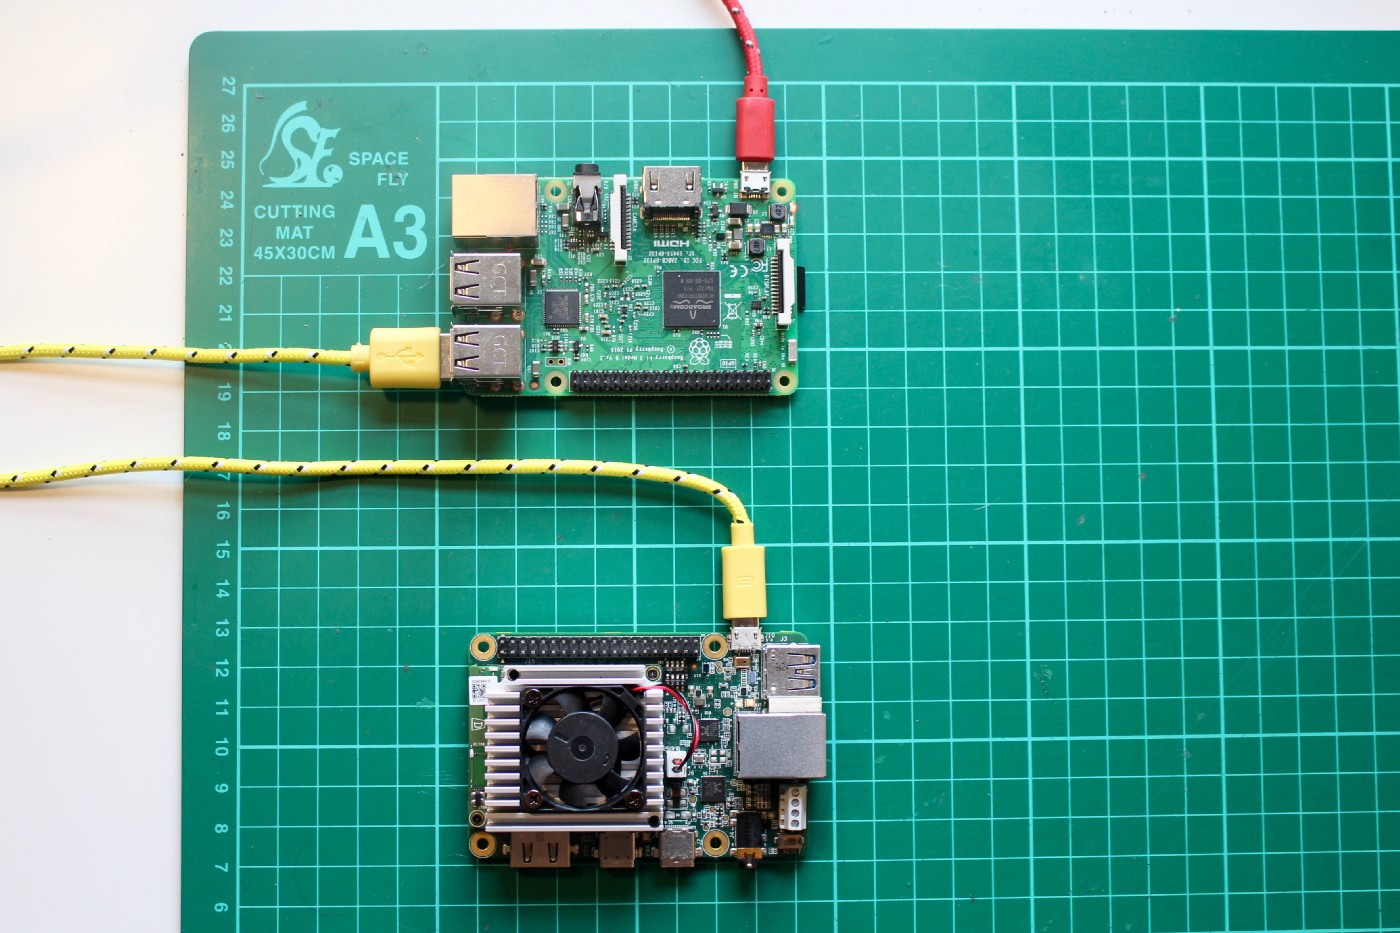 How to use a Raspberry Pi to flash new firmware onto the Coral Dev Board